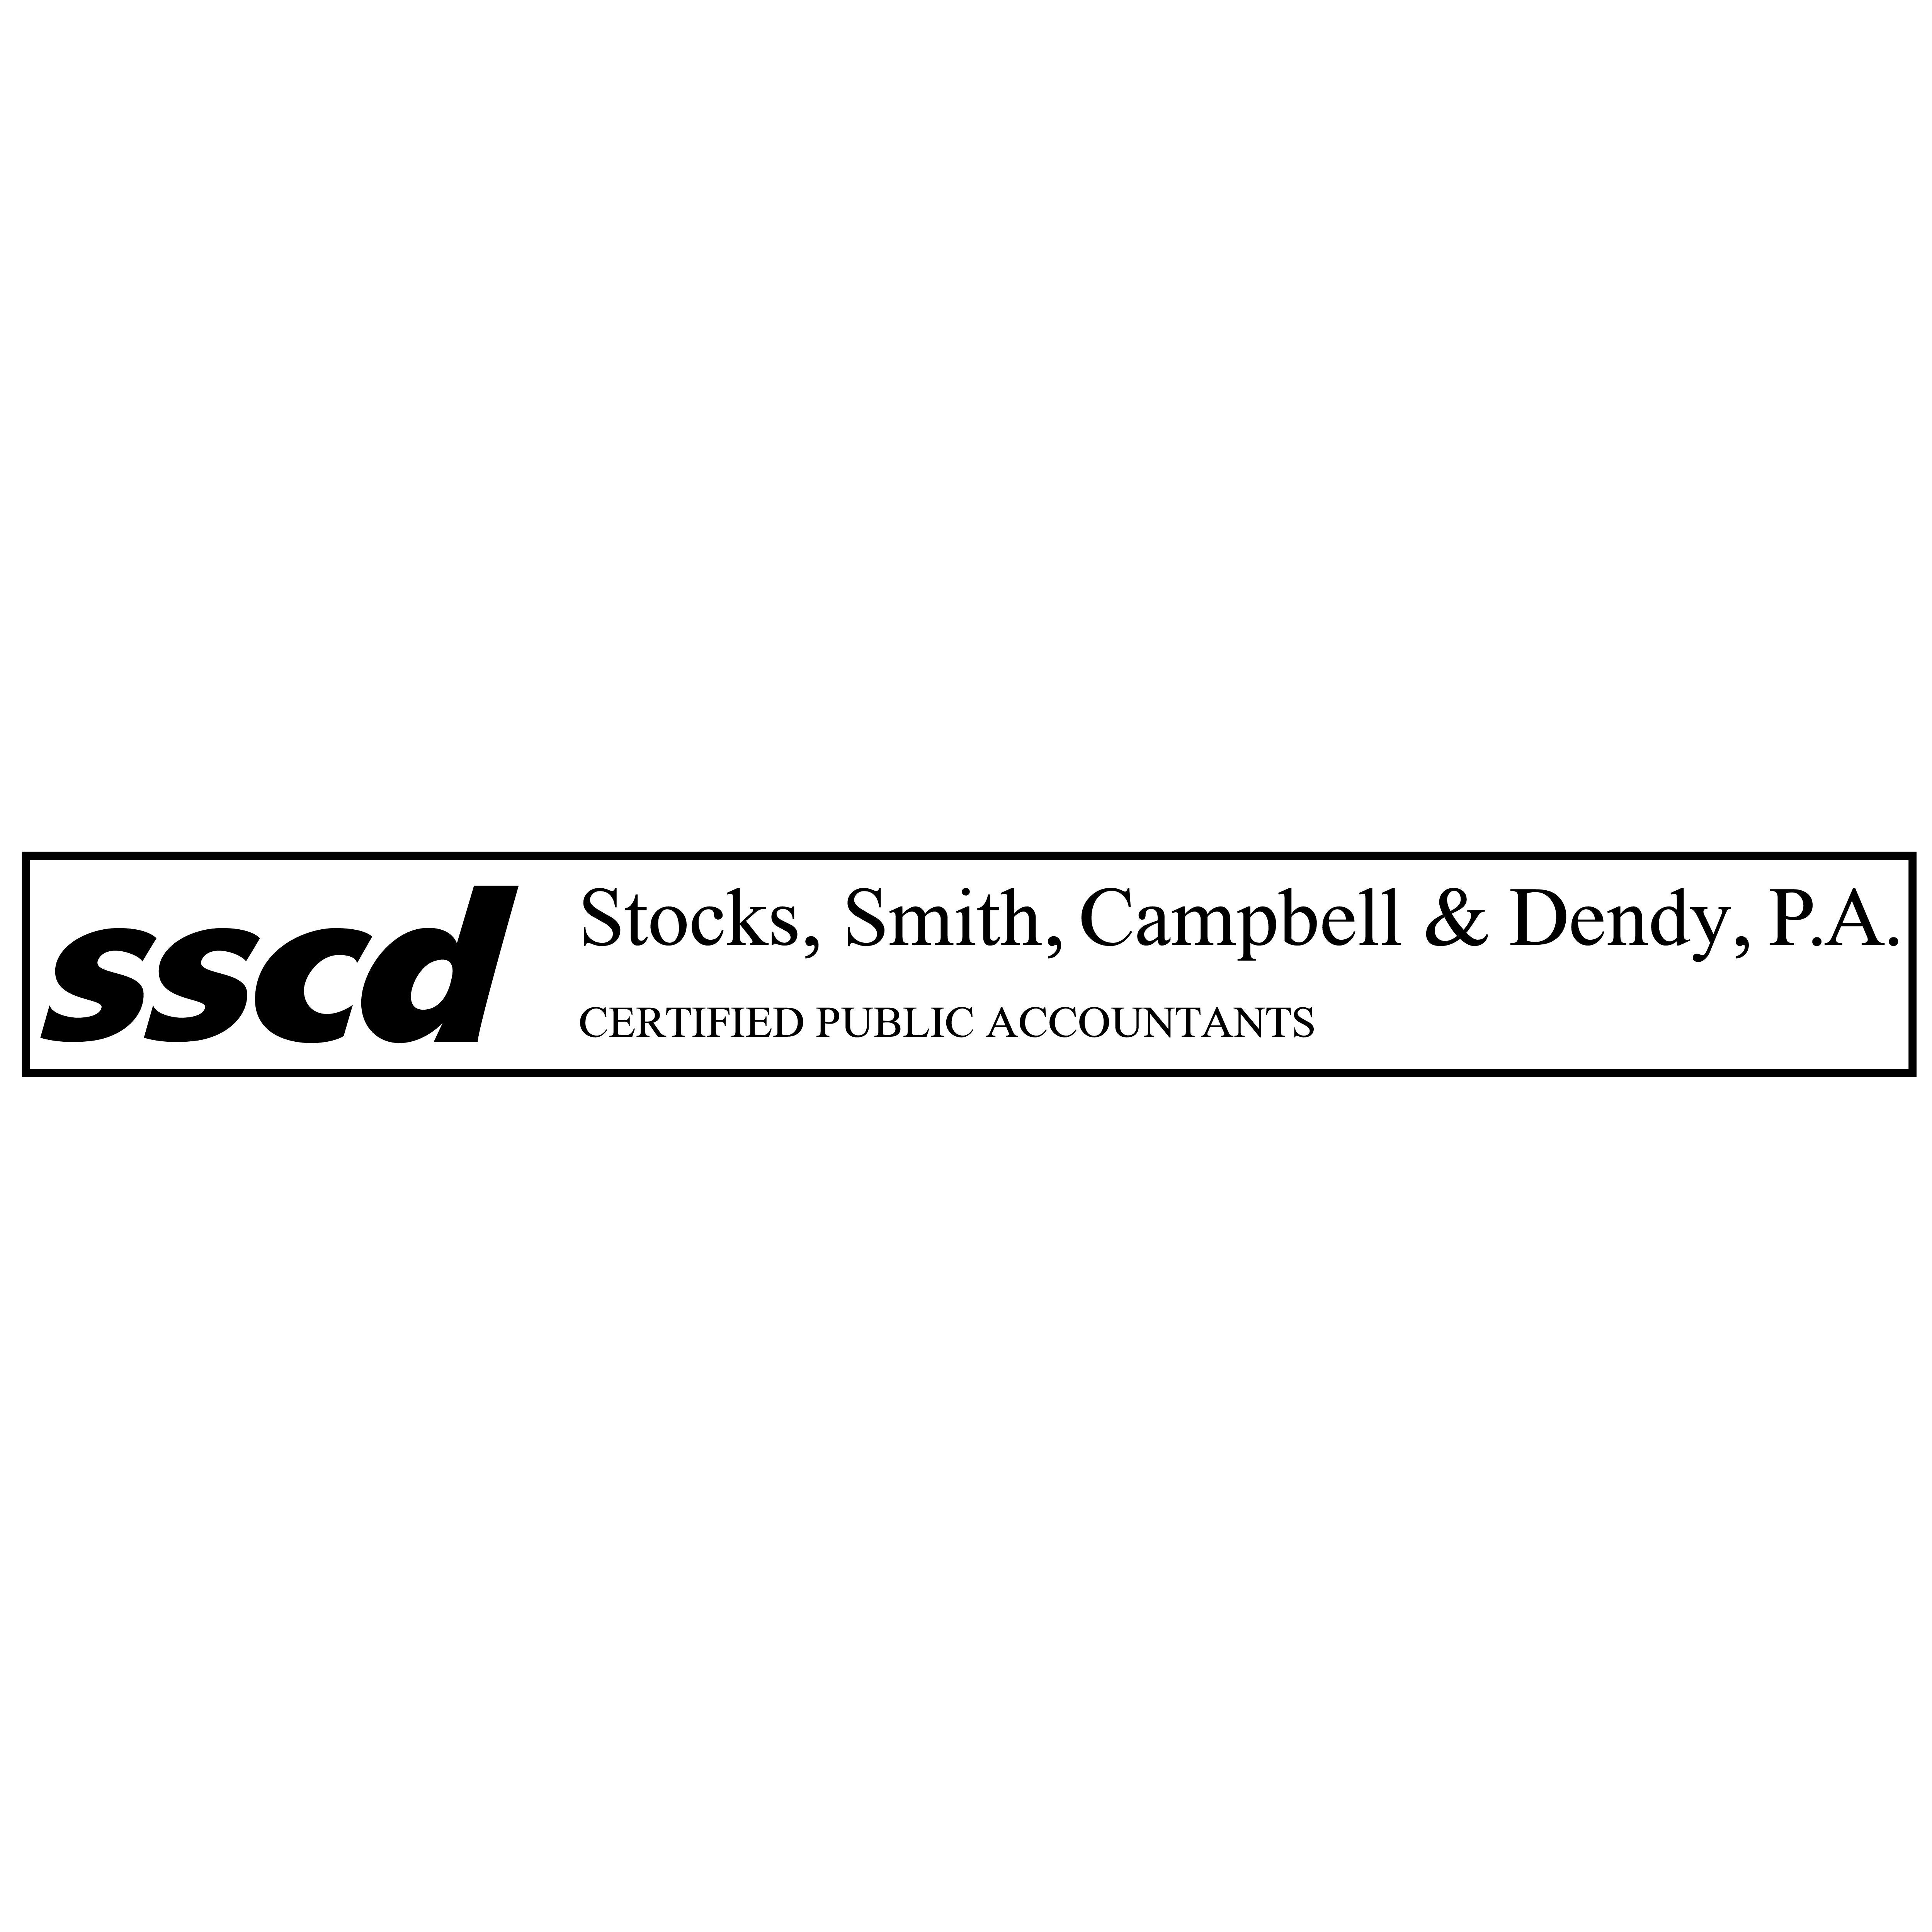 Stocks, Smith, Campbell & Dendy, P.A.